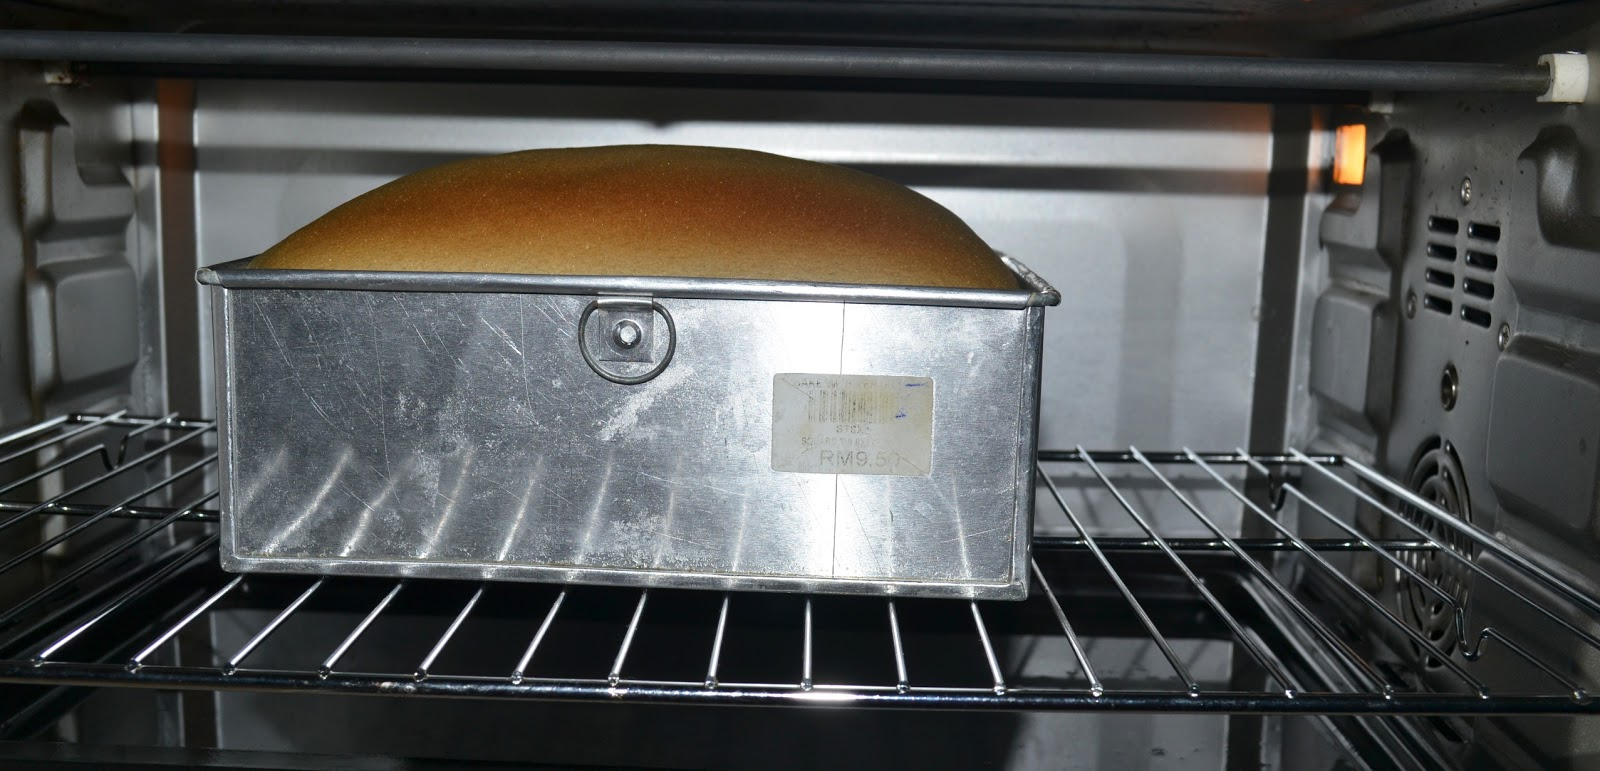 The Steam Bake Method A Tray Filled With Water Is Placed On Bottom Rack